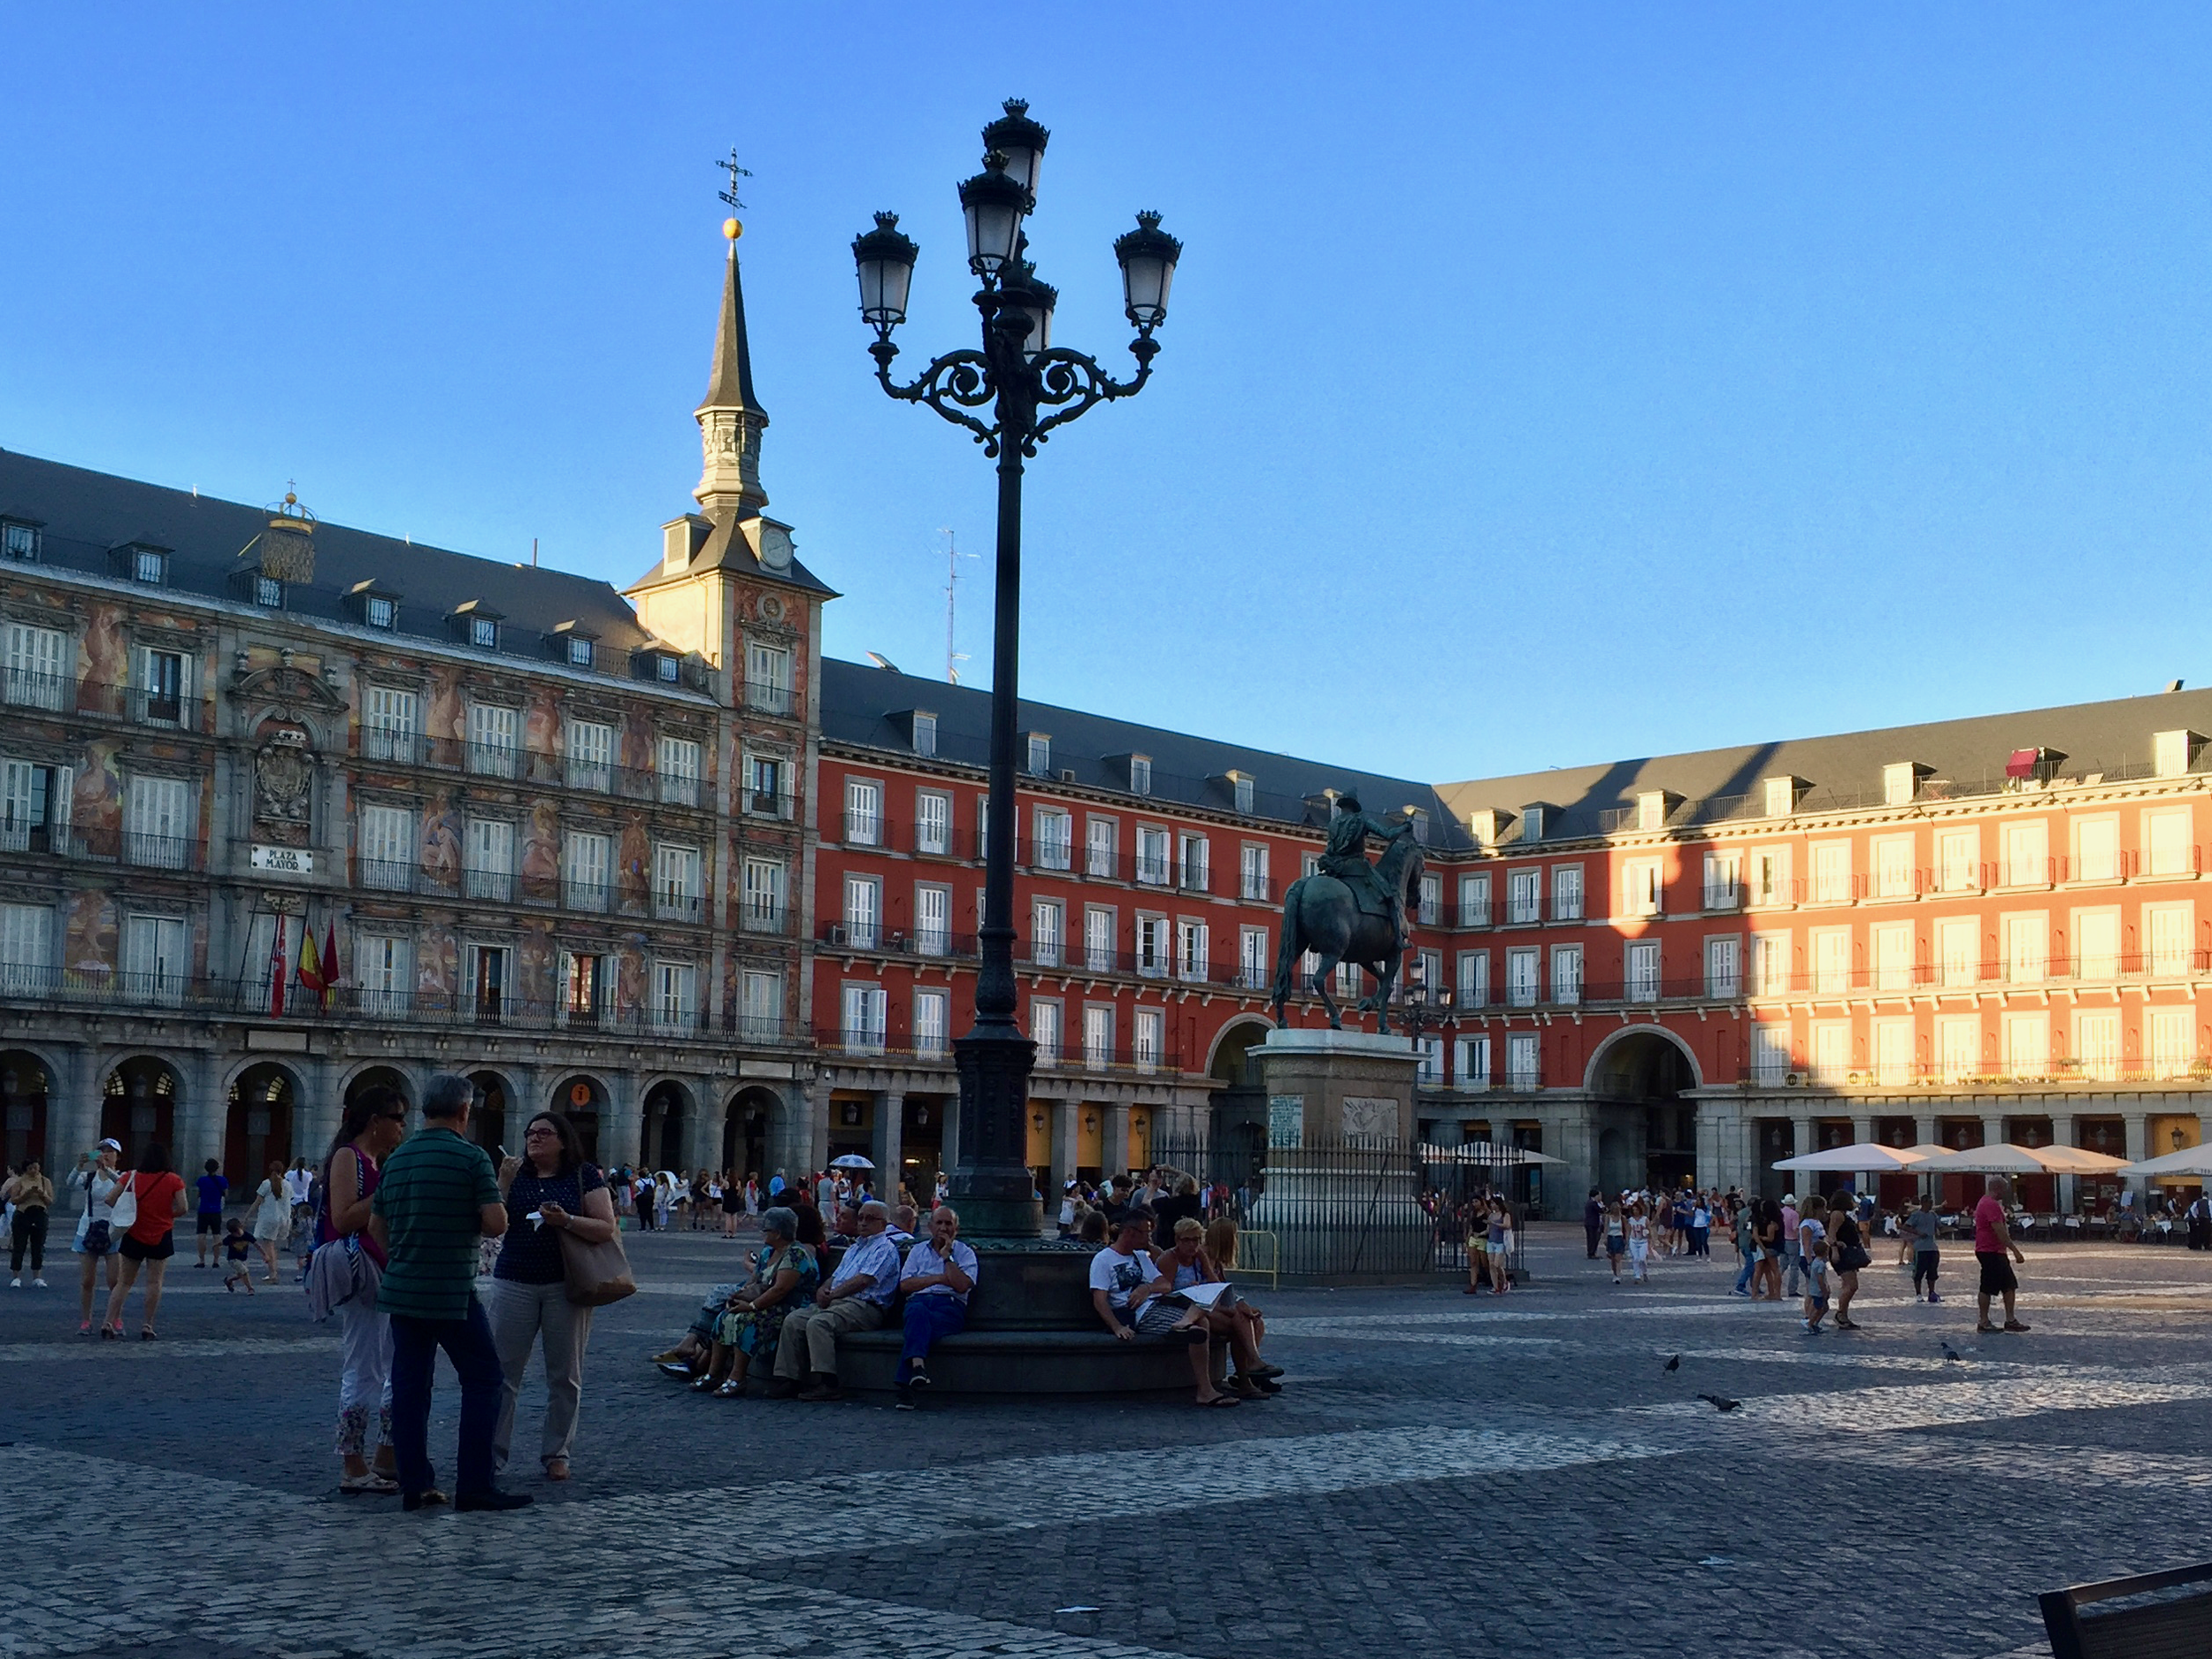 We enjoyed Madrid and Plaza Mayor, but don't want to devote another day to the city on a short trip.  (click to enlarge)